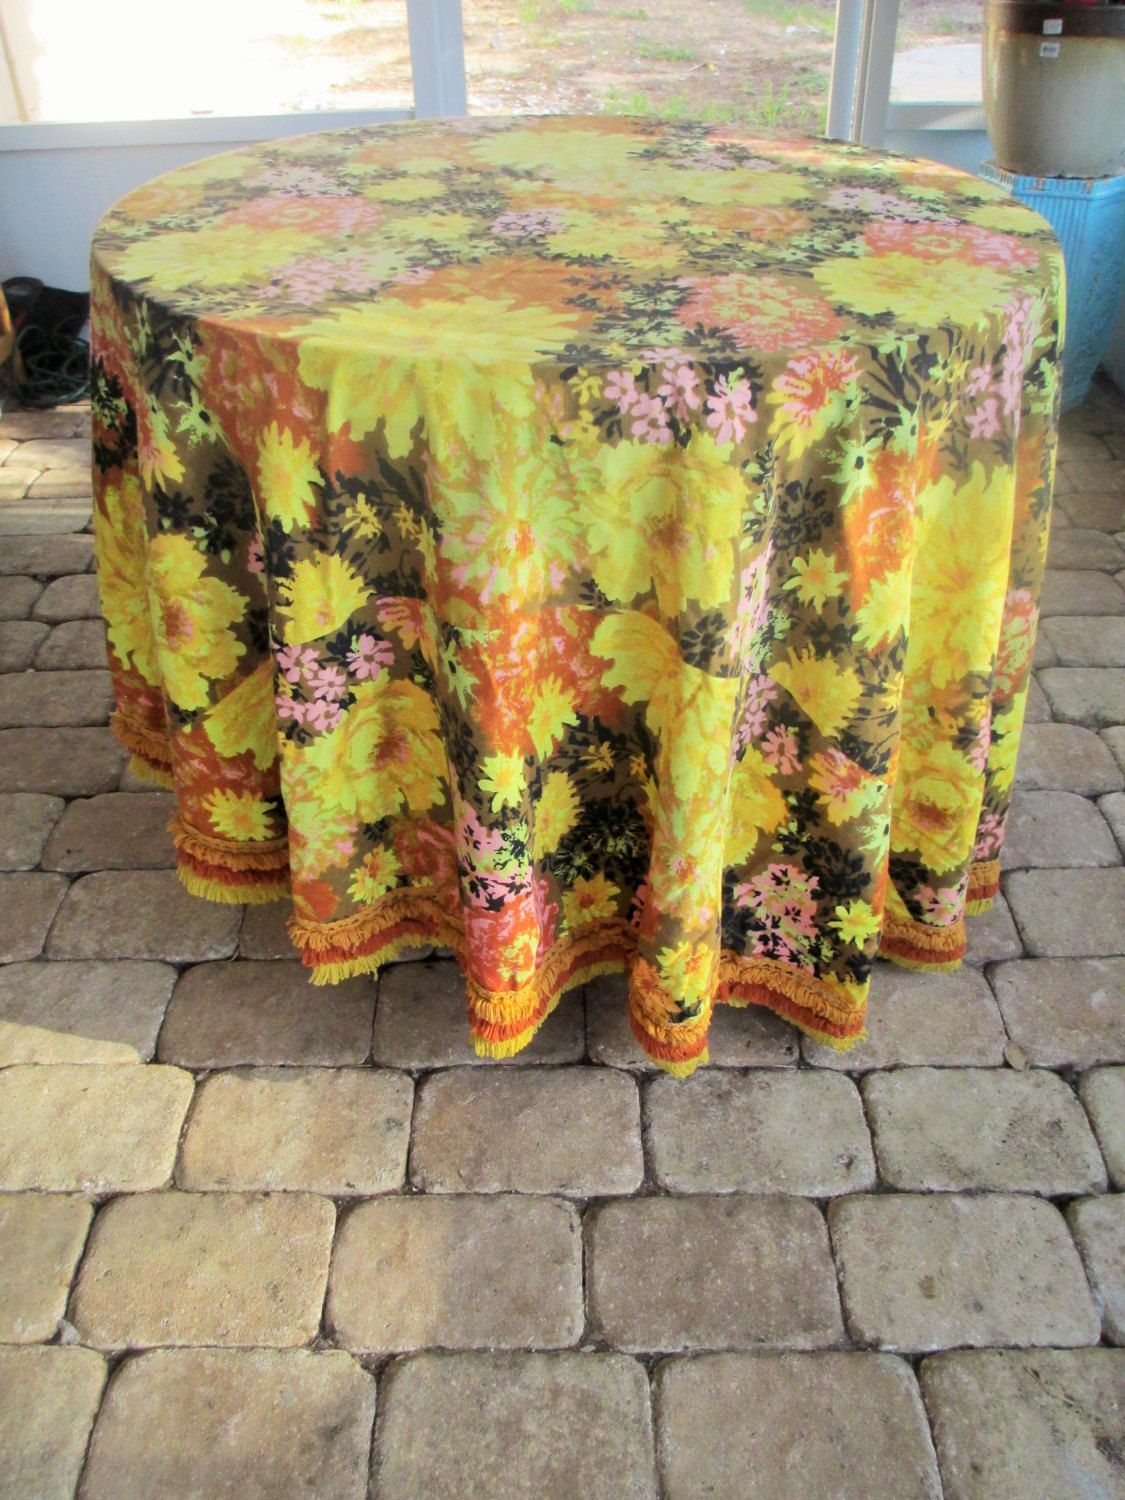 Autumn Floral Tablecloth, Mod Flowers, Fall Tablecloth, Vintage Roundu2026